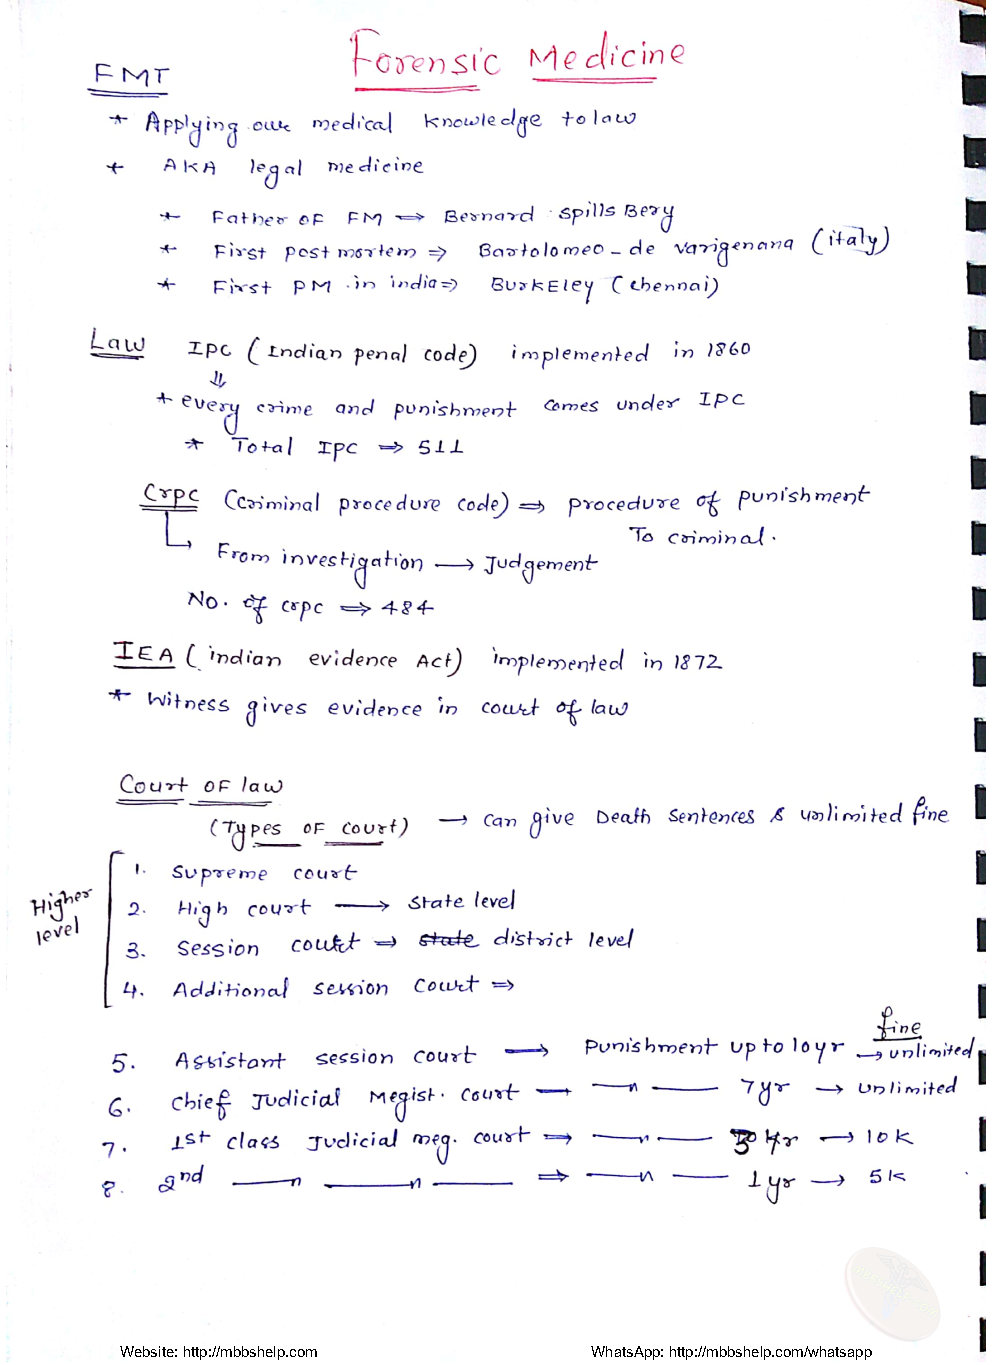 Marrow Handwritten Notes Pdf Free Download